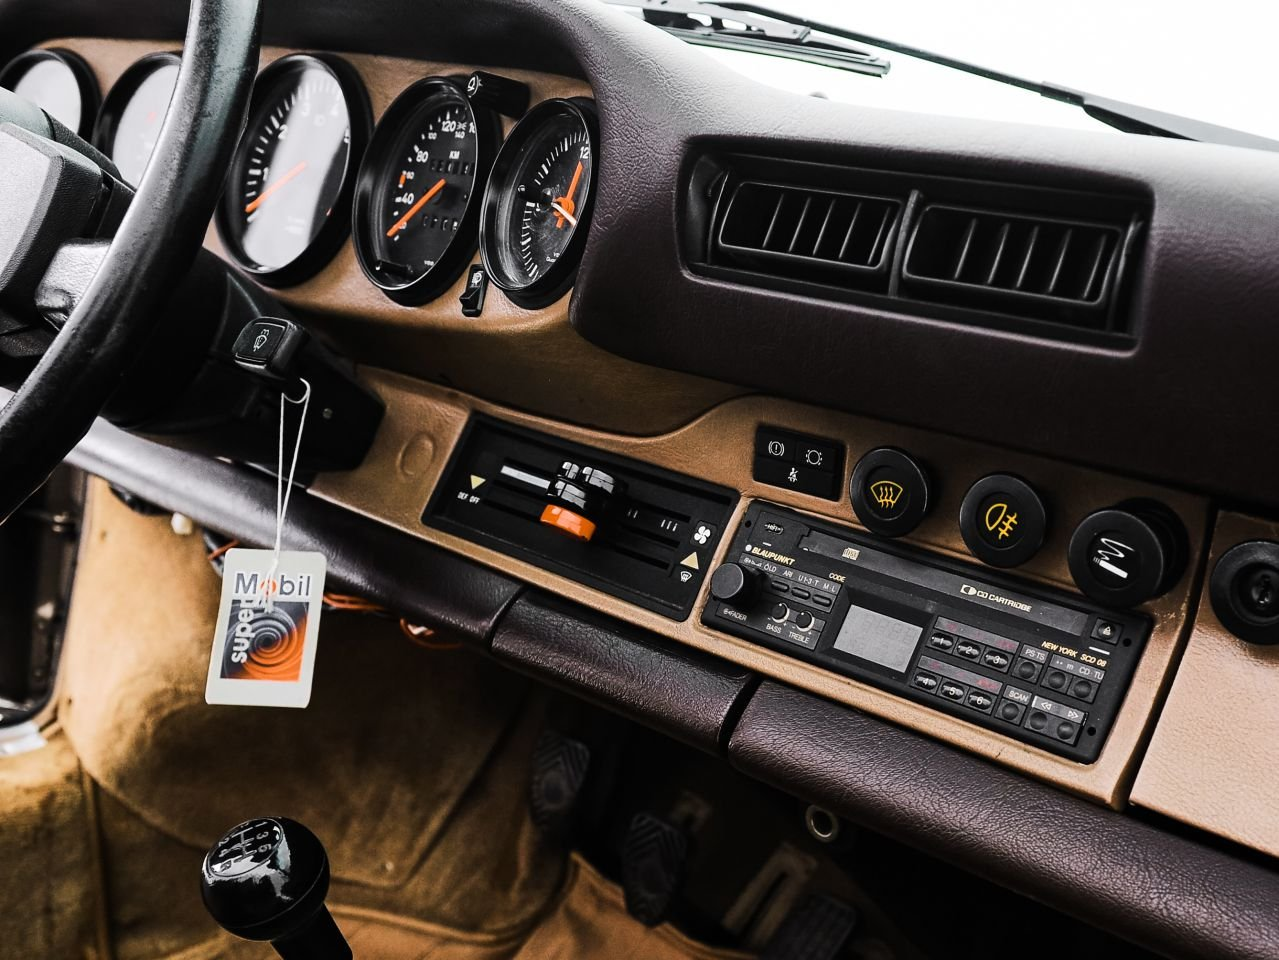 1984 PORSCHE 911 3.2 CARRERA CABRIOLET For Sale by Auction (picture 3 of 6)